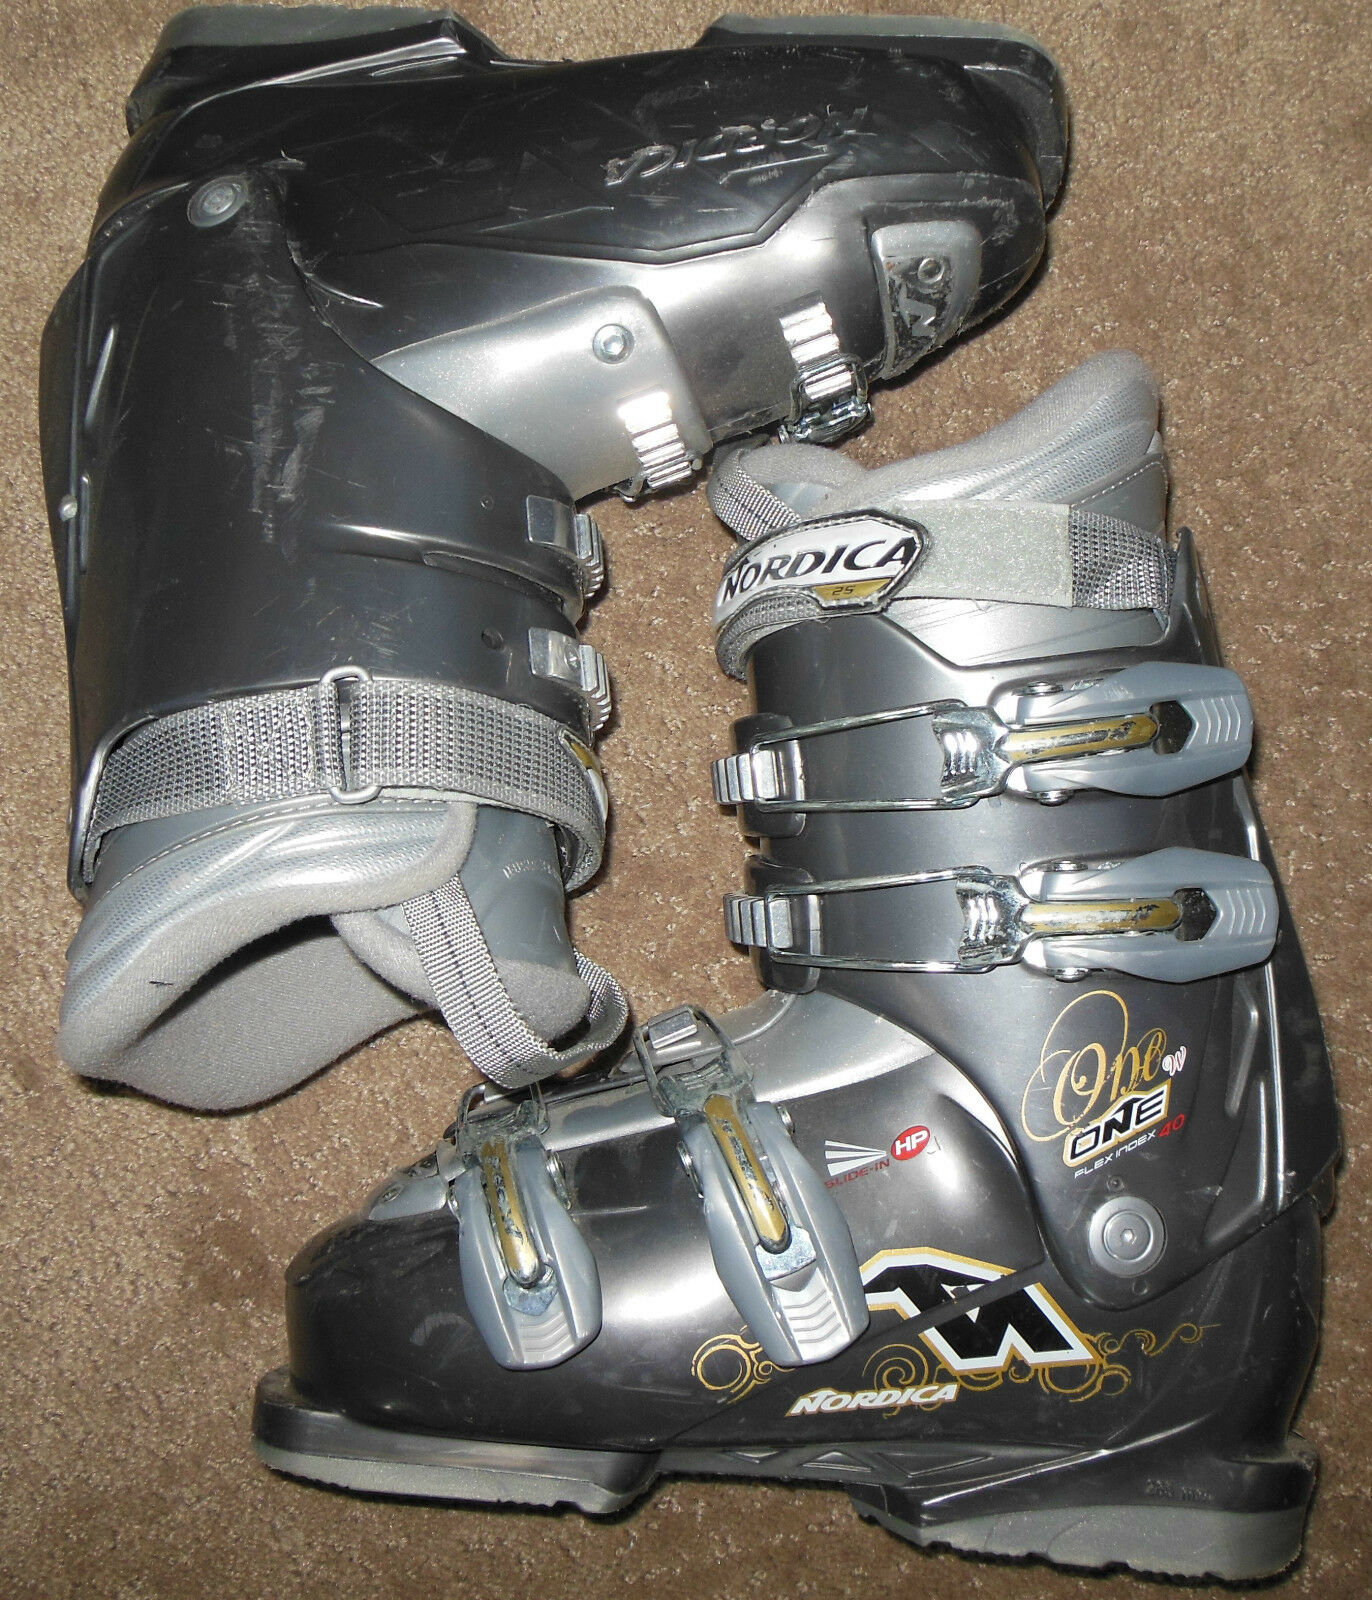 Nordica One 40 W Downhill Ski Boots womens Size 7.5,   24 mondo, 285mm sole